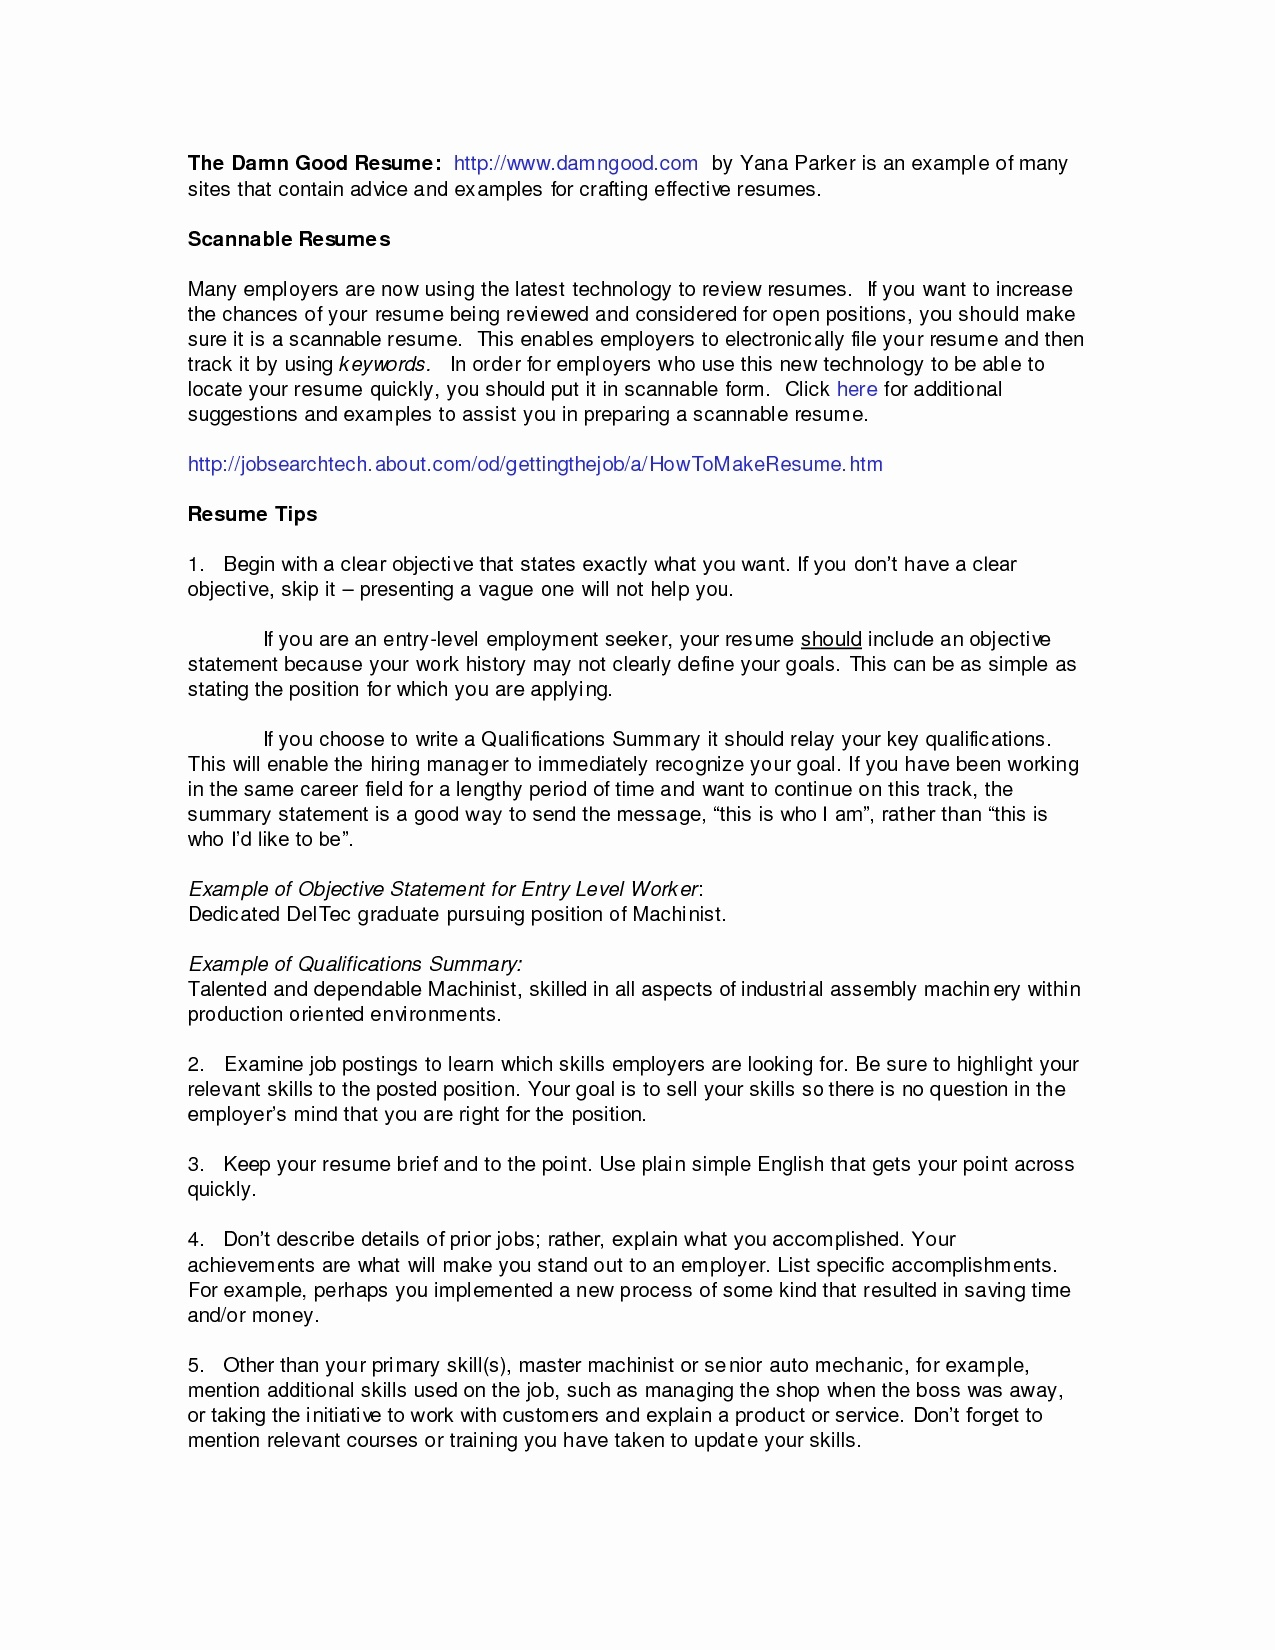 Service Industry Resume Template - Interest Section Resume Examples Fresh Sample Hobbies and